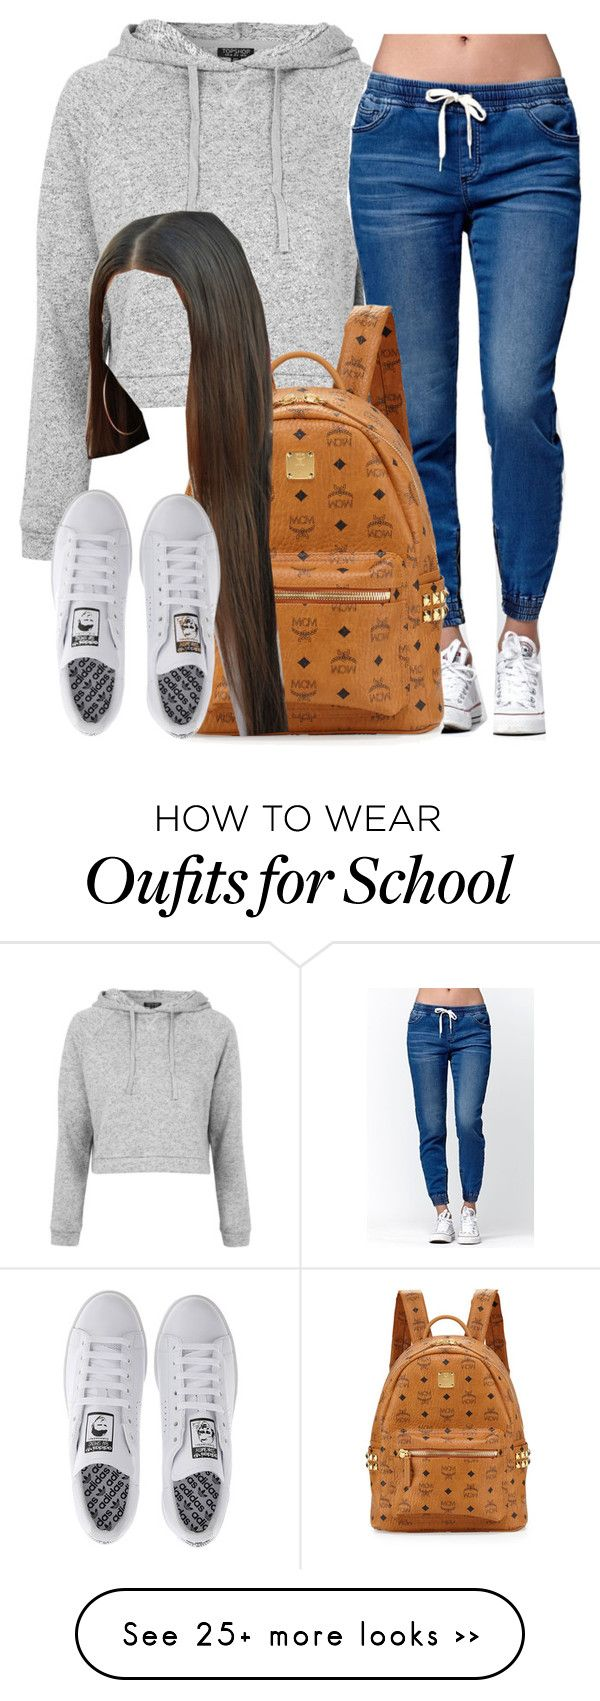 """""""School """" by trillest-queen on Polyvore featuring Topshop, Bullhead Denim Co., MCM and adidas"""